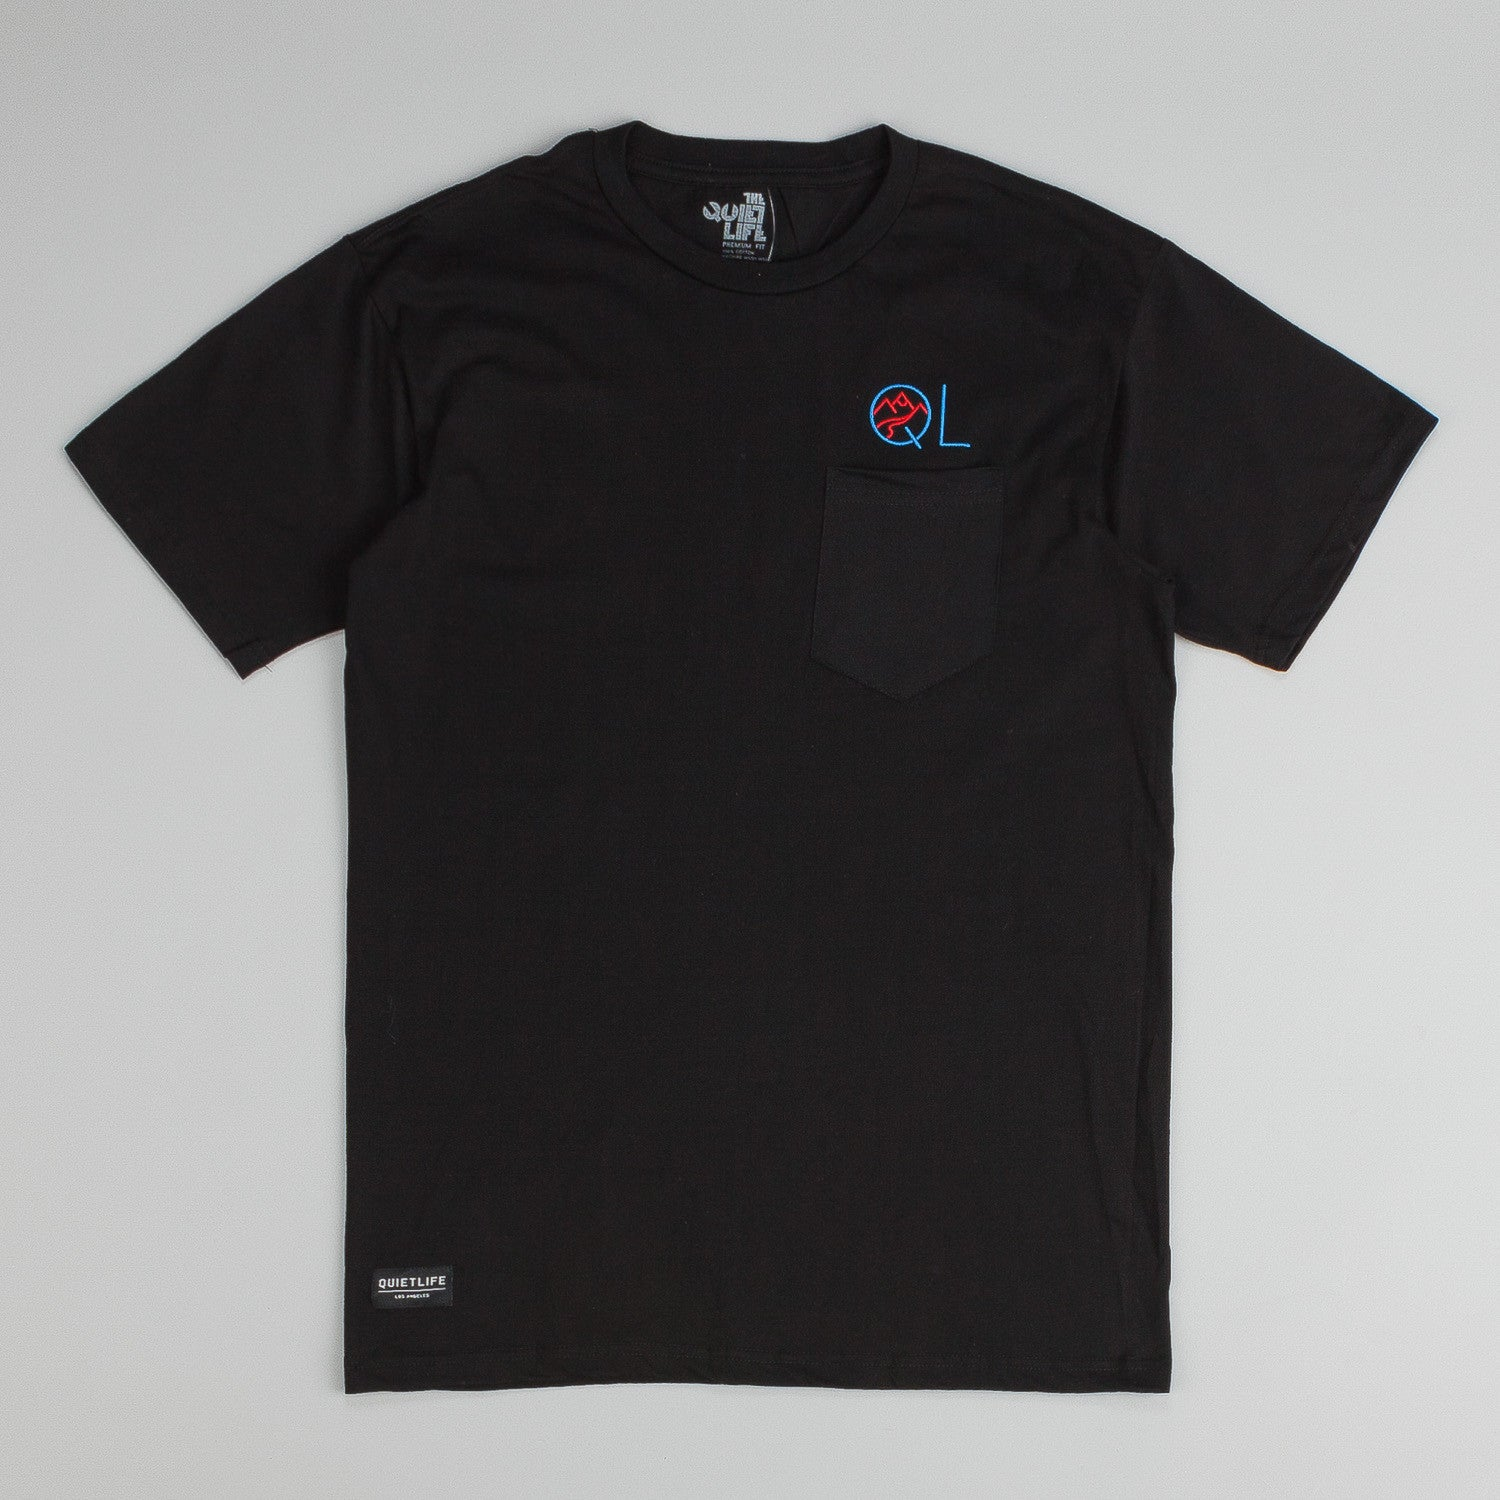 The Quiet Life Mountain Embroidered Pocket T-Shirt